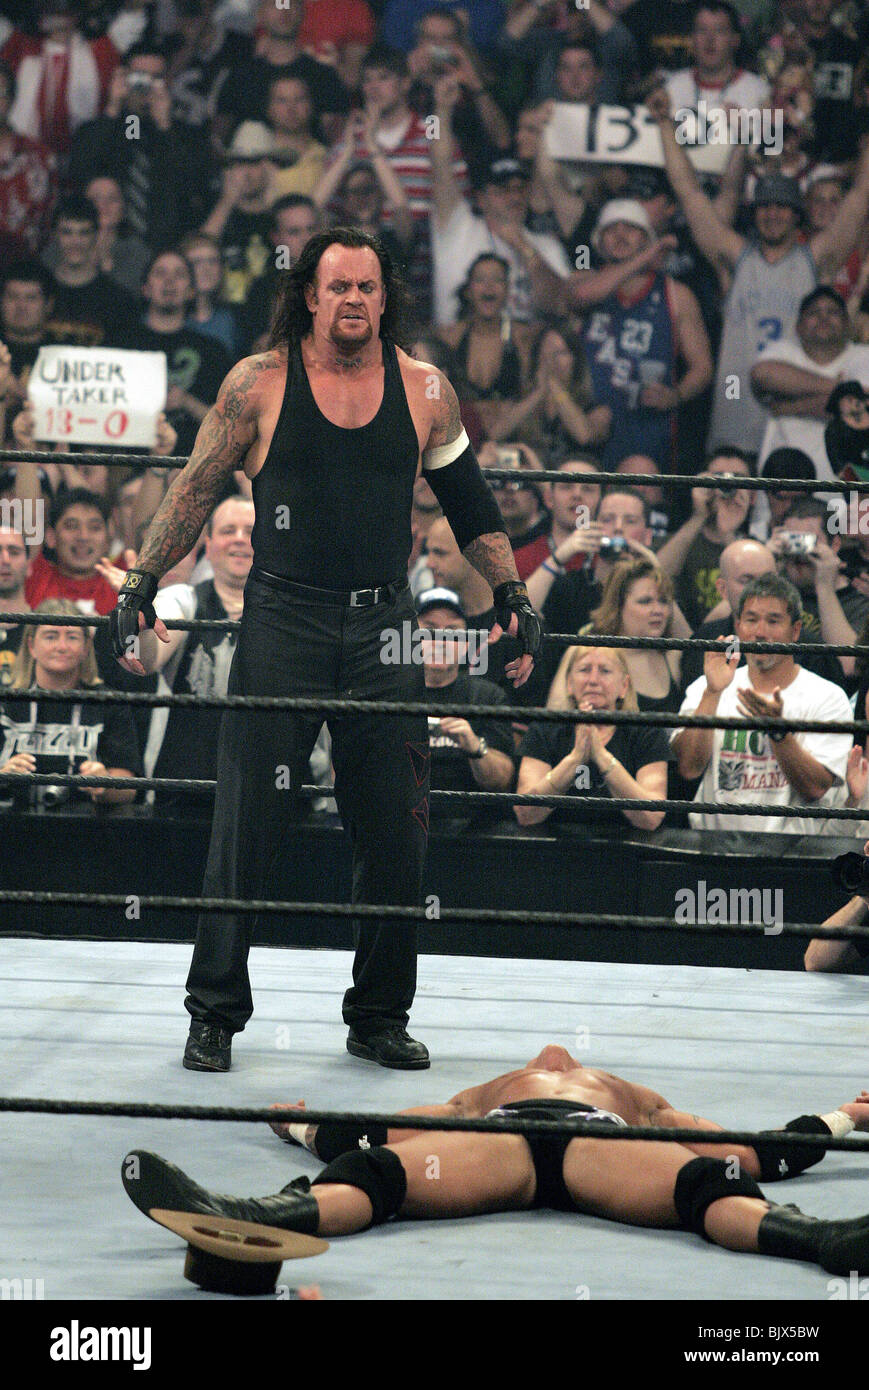 UNDERTAKER & RANDY ORTON WRESTLEMANIA 21 GOES HOLLYWOOD ...